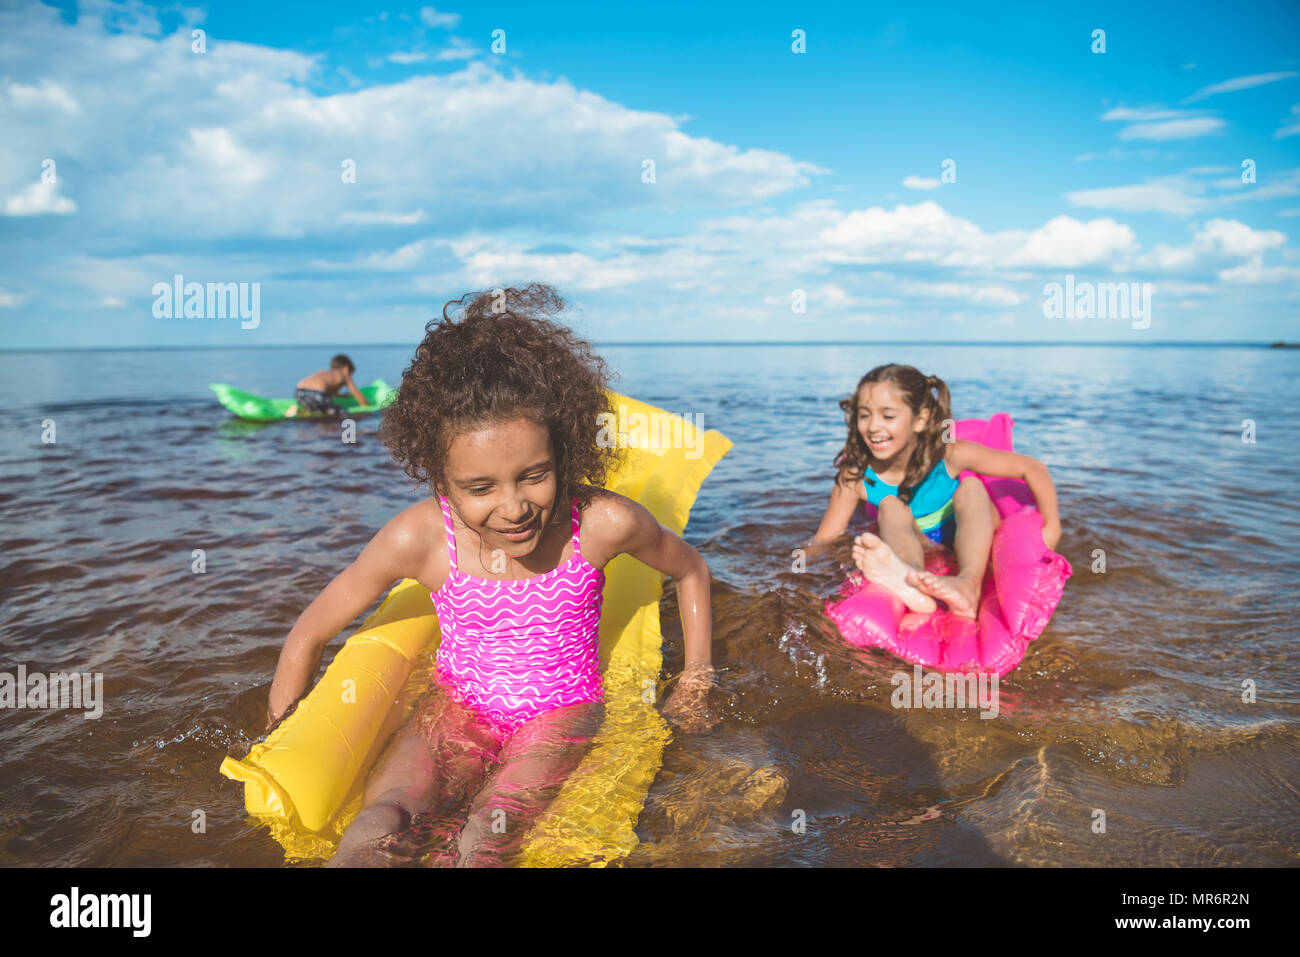 multicultural happy girls swimming on inflatable mattresses at sea together - Stock Image